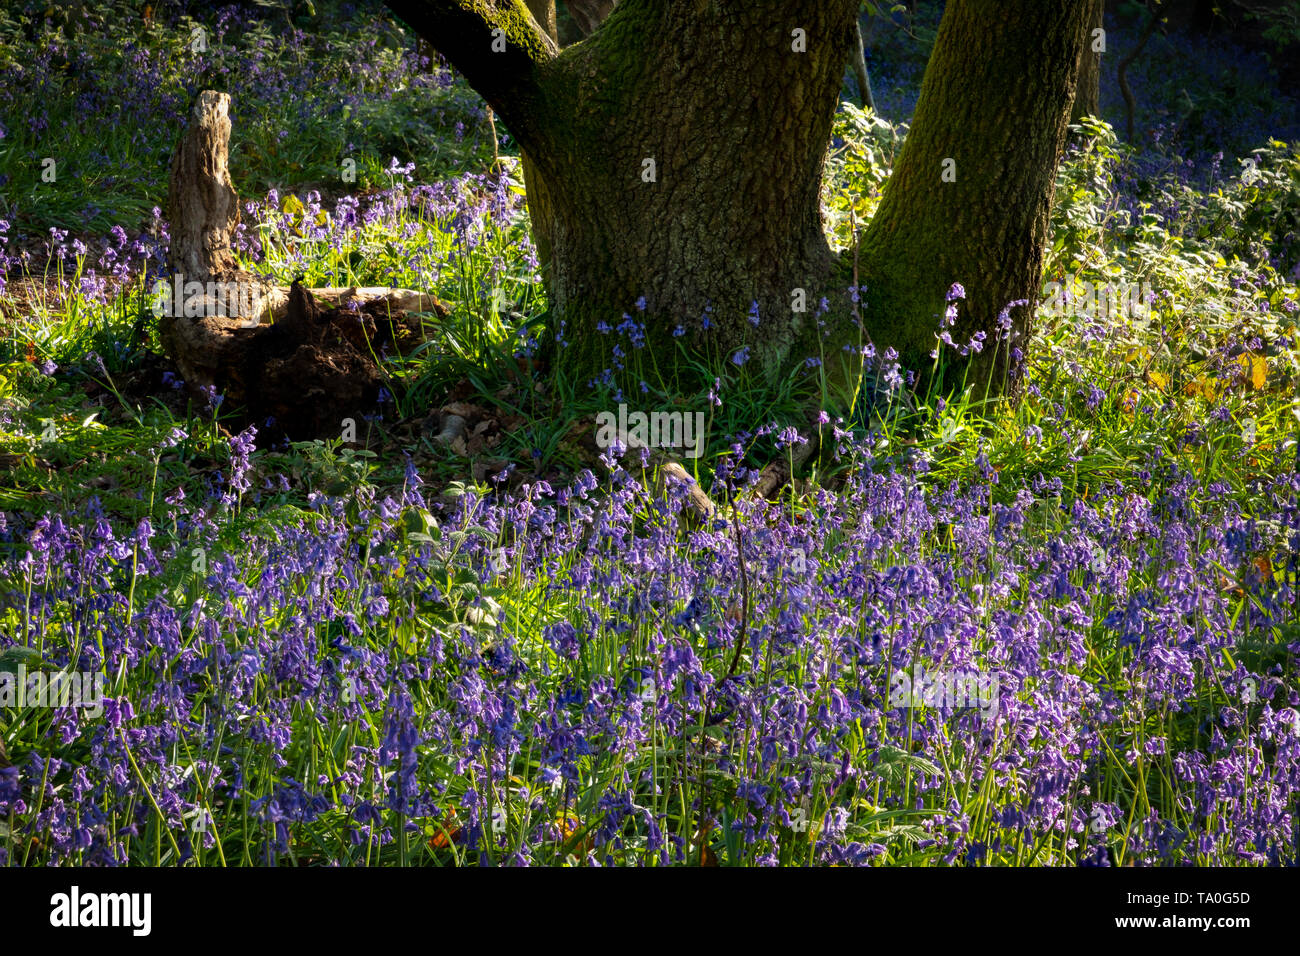 Bluebells in the ancient woodland of The Outwoods which is one of the oldest surviving woodland sites in Charnwood. - Stock Image